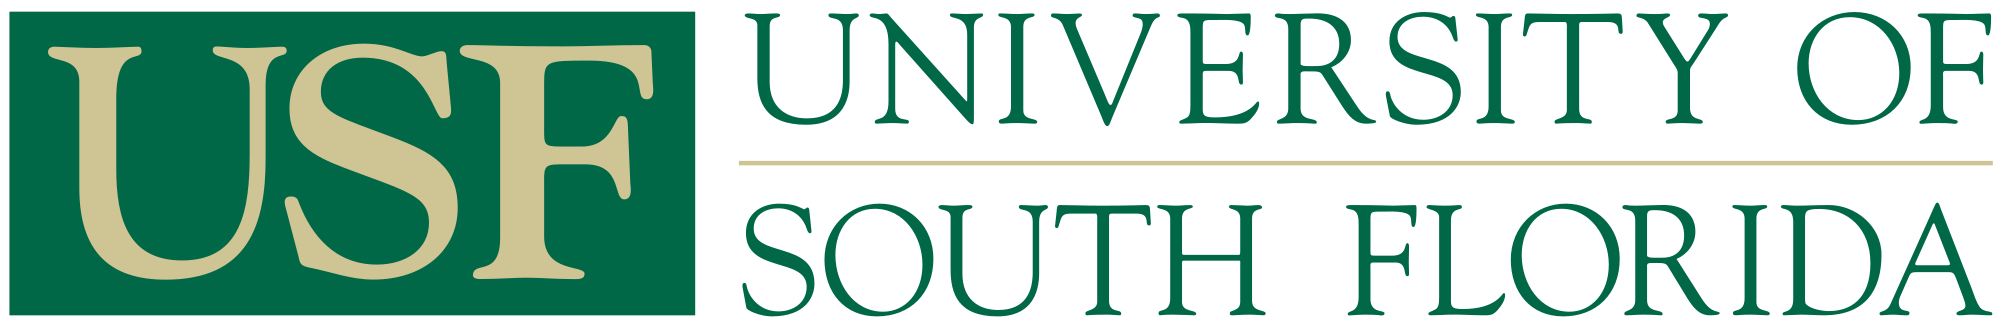 File wordmark svg wikimedia. University of south florida logo png free library